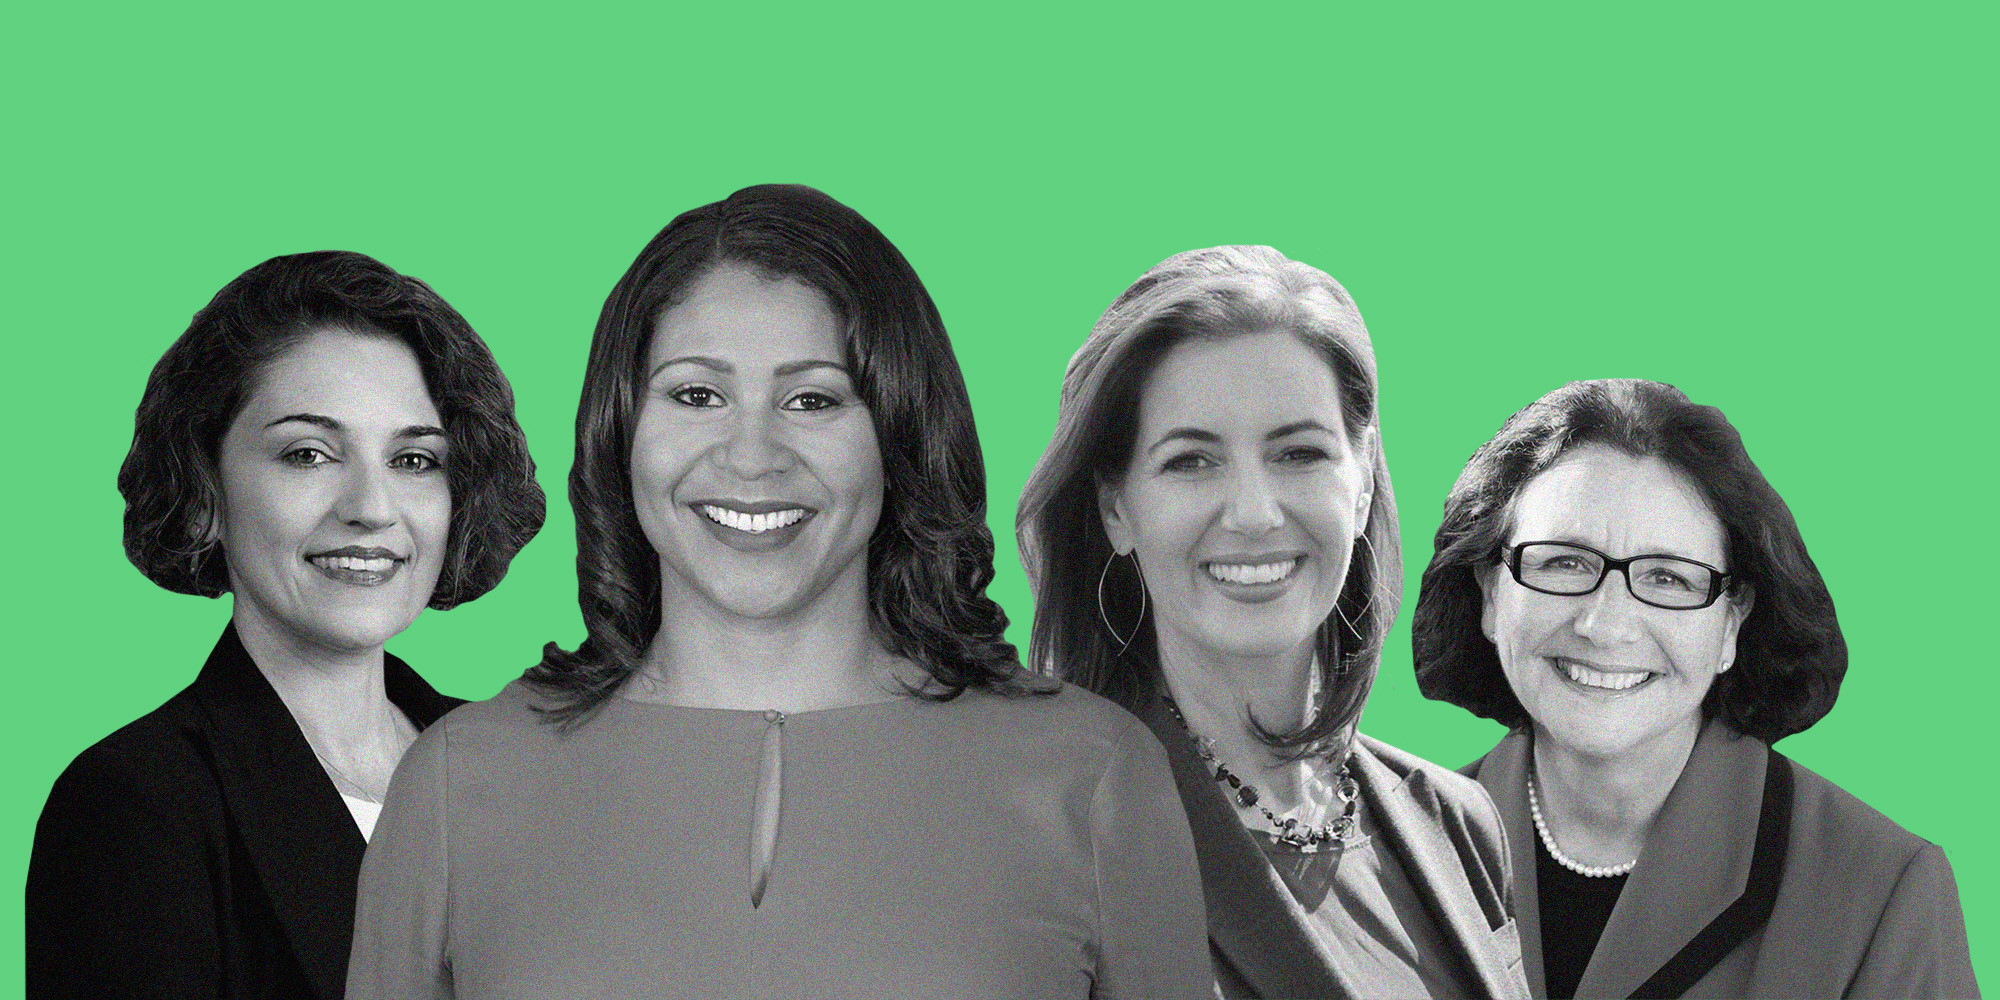 Celebrate International Women's Day with electoral reform